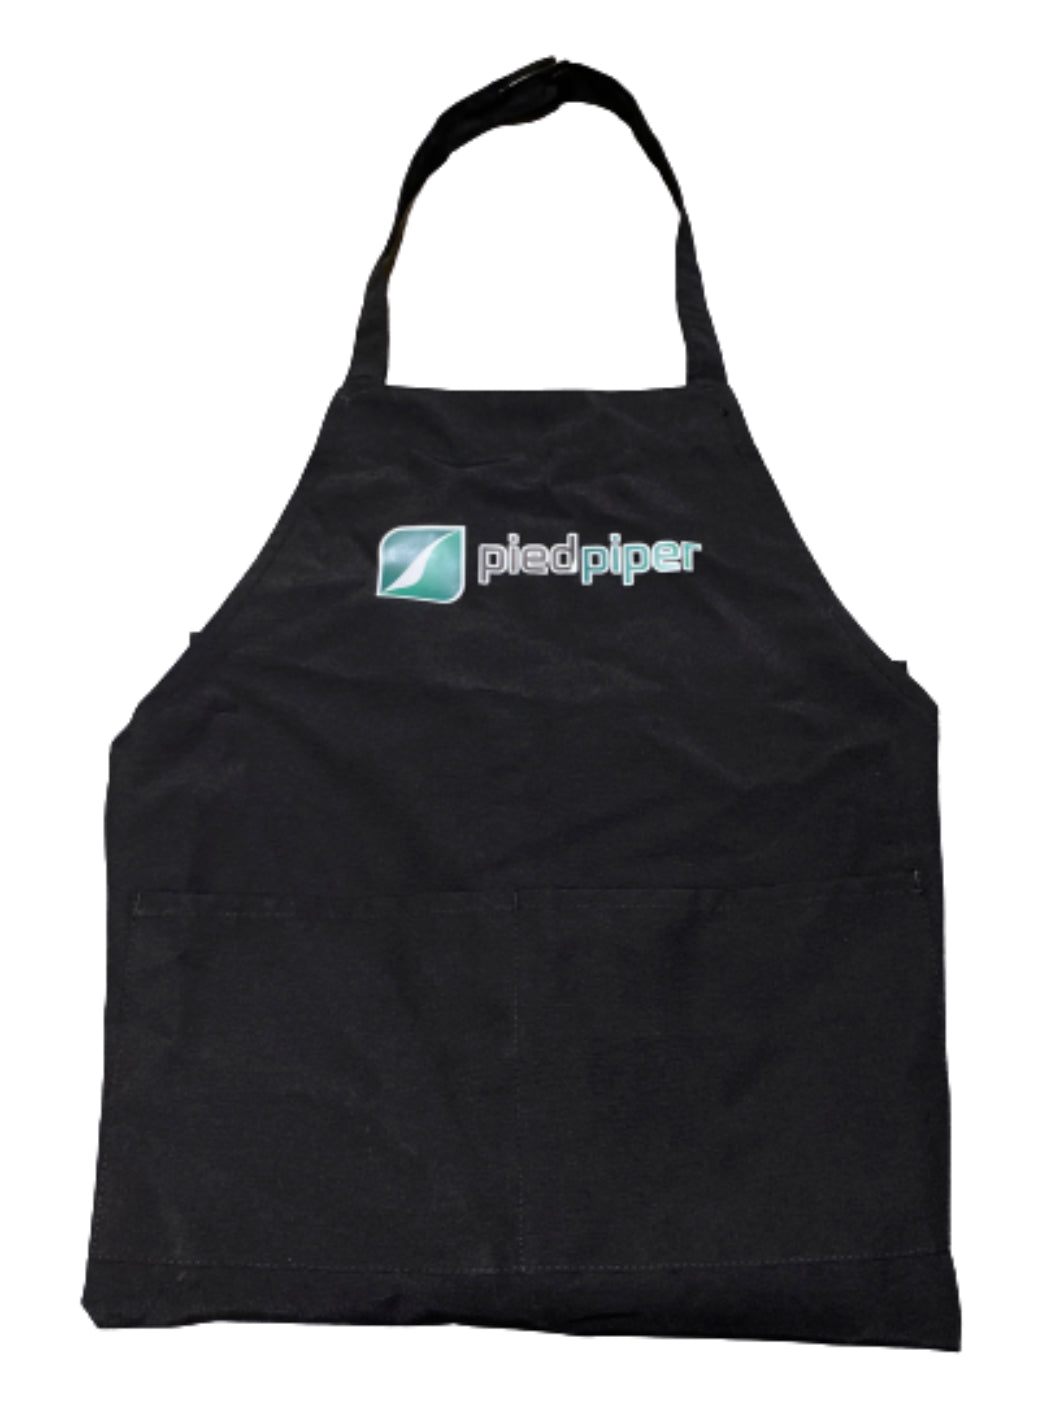 SILICON VALLEY: Jared's Pied Piper 4.0 Apron